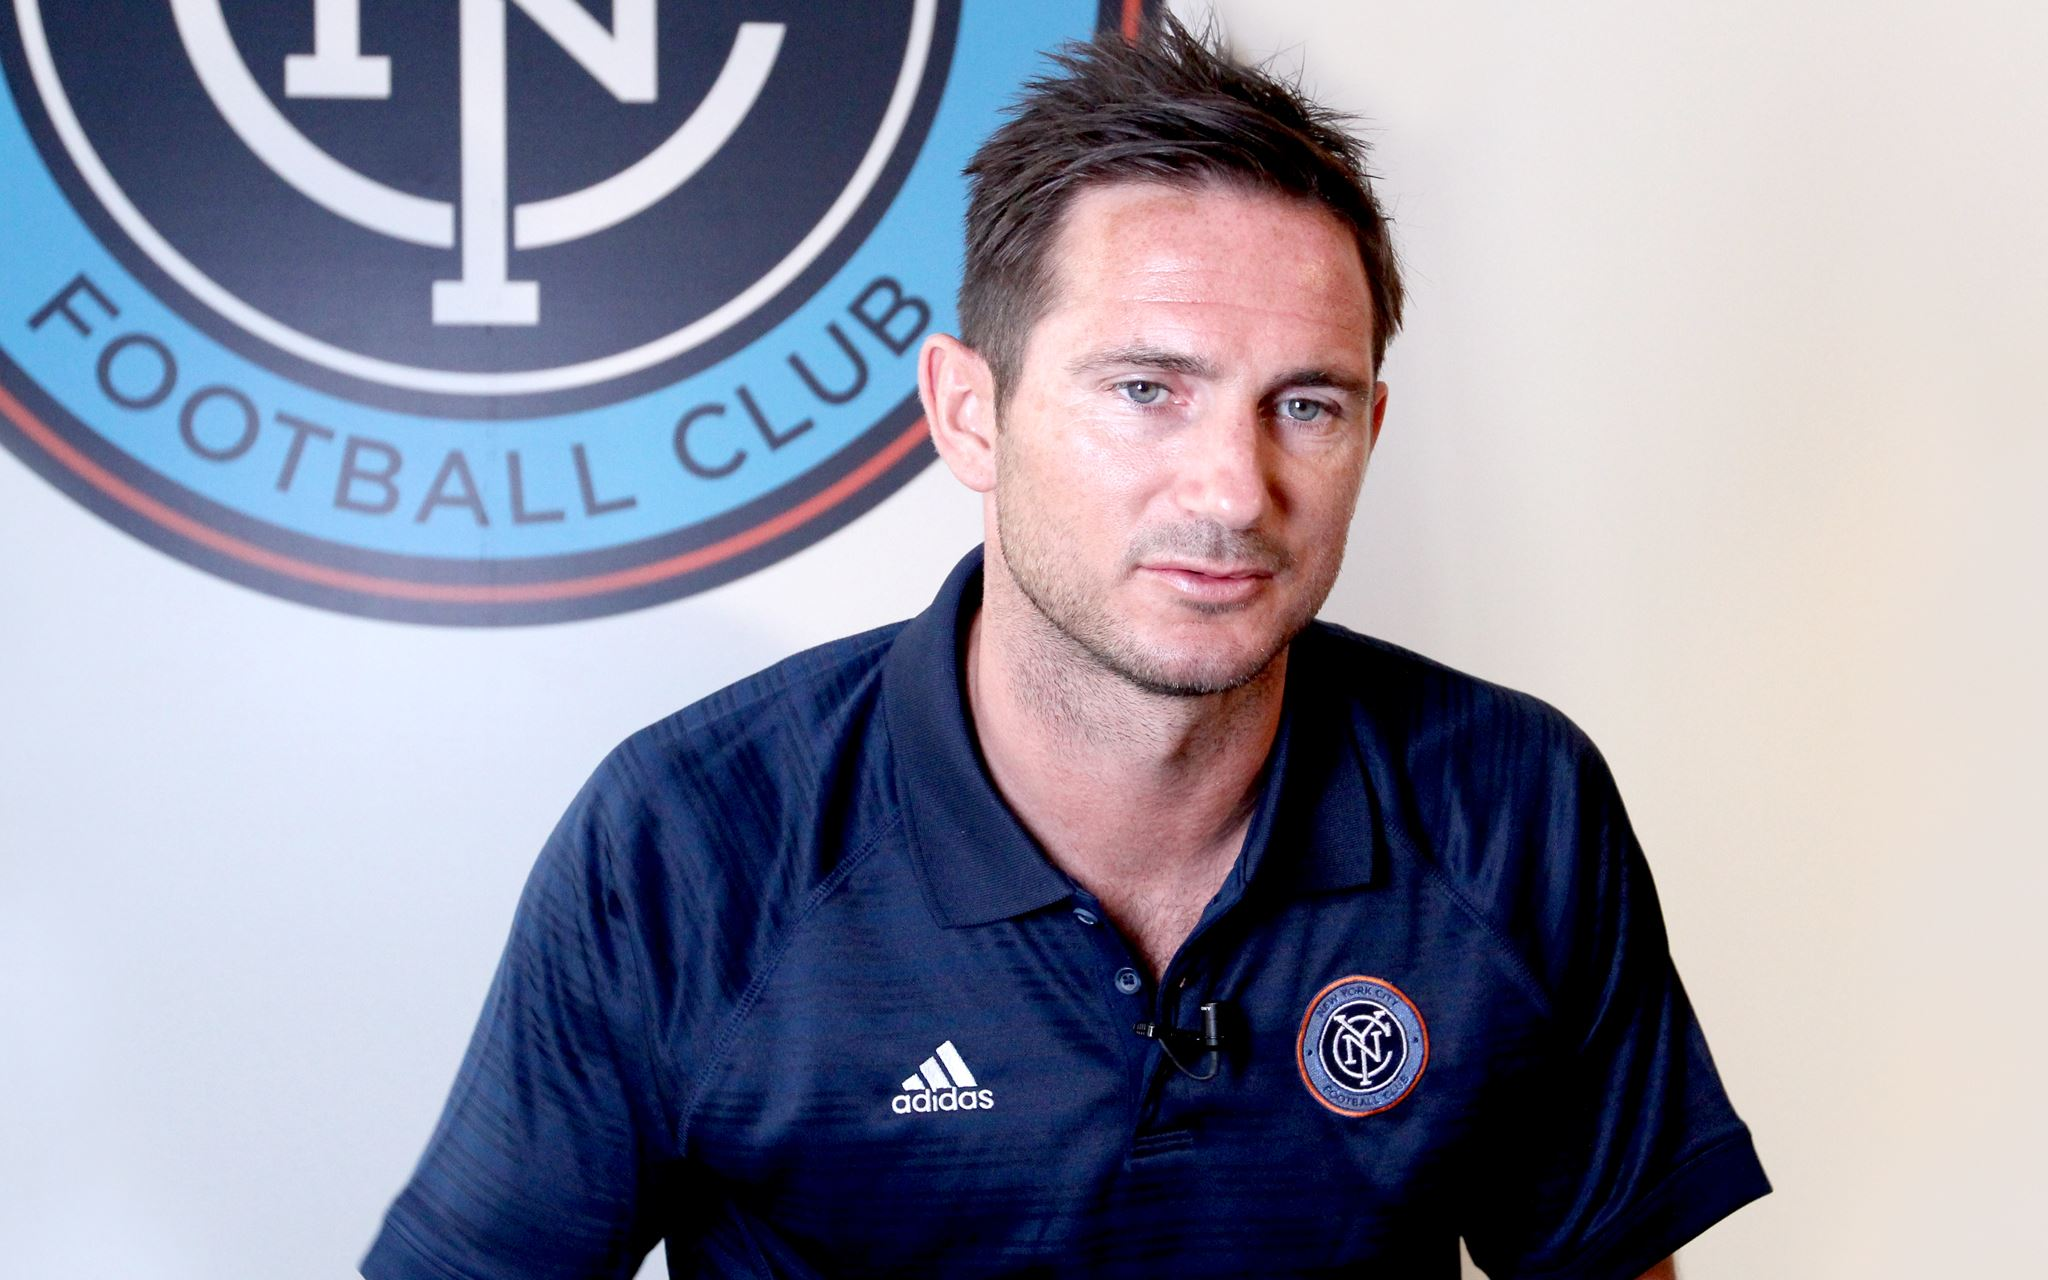 What Frank Lampard's Deal Means for NYCFC, MLS, Manchester City and the Player